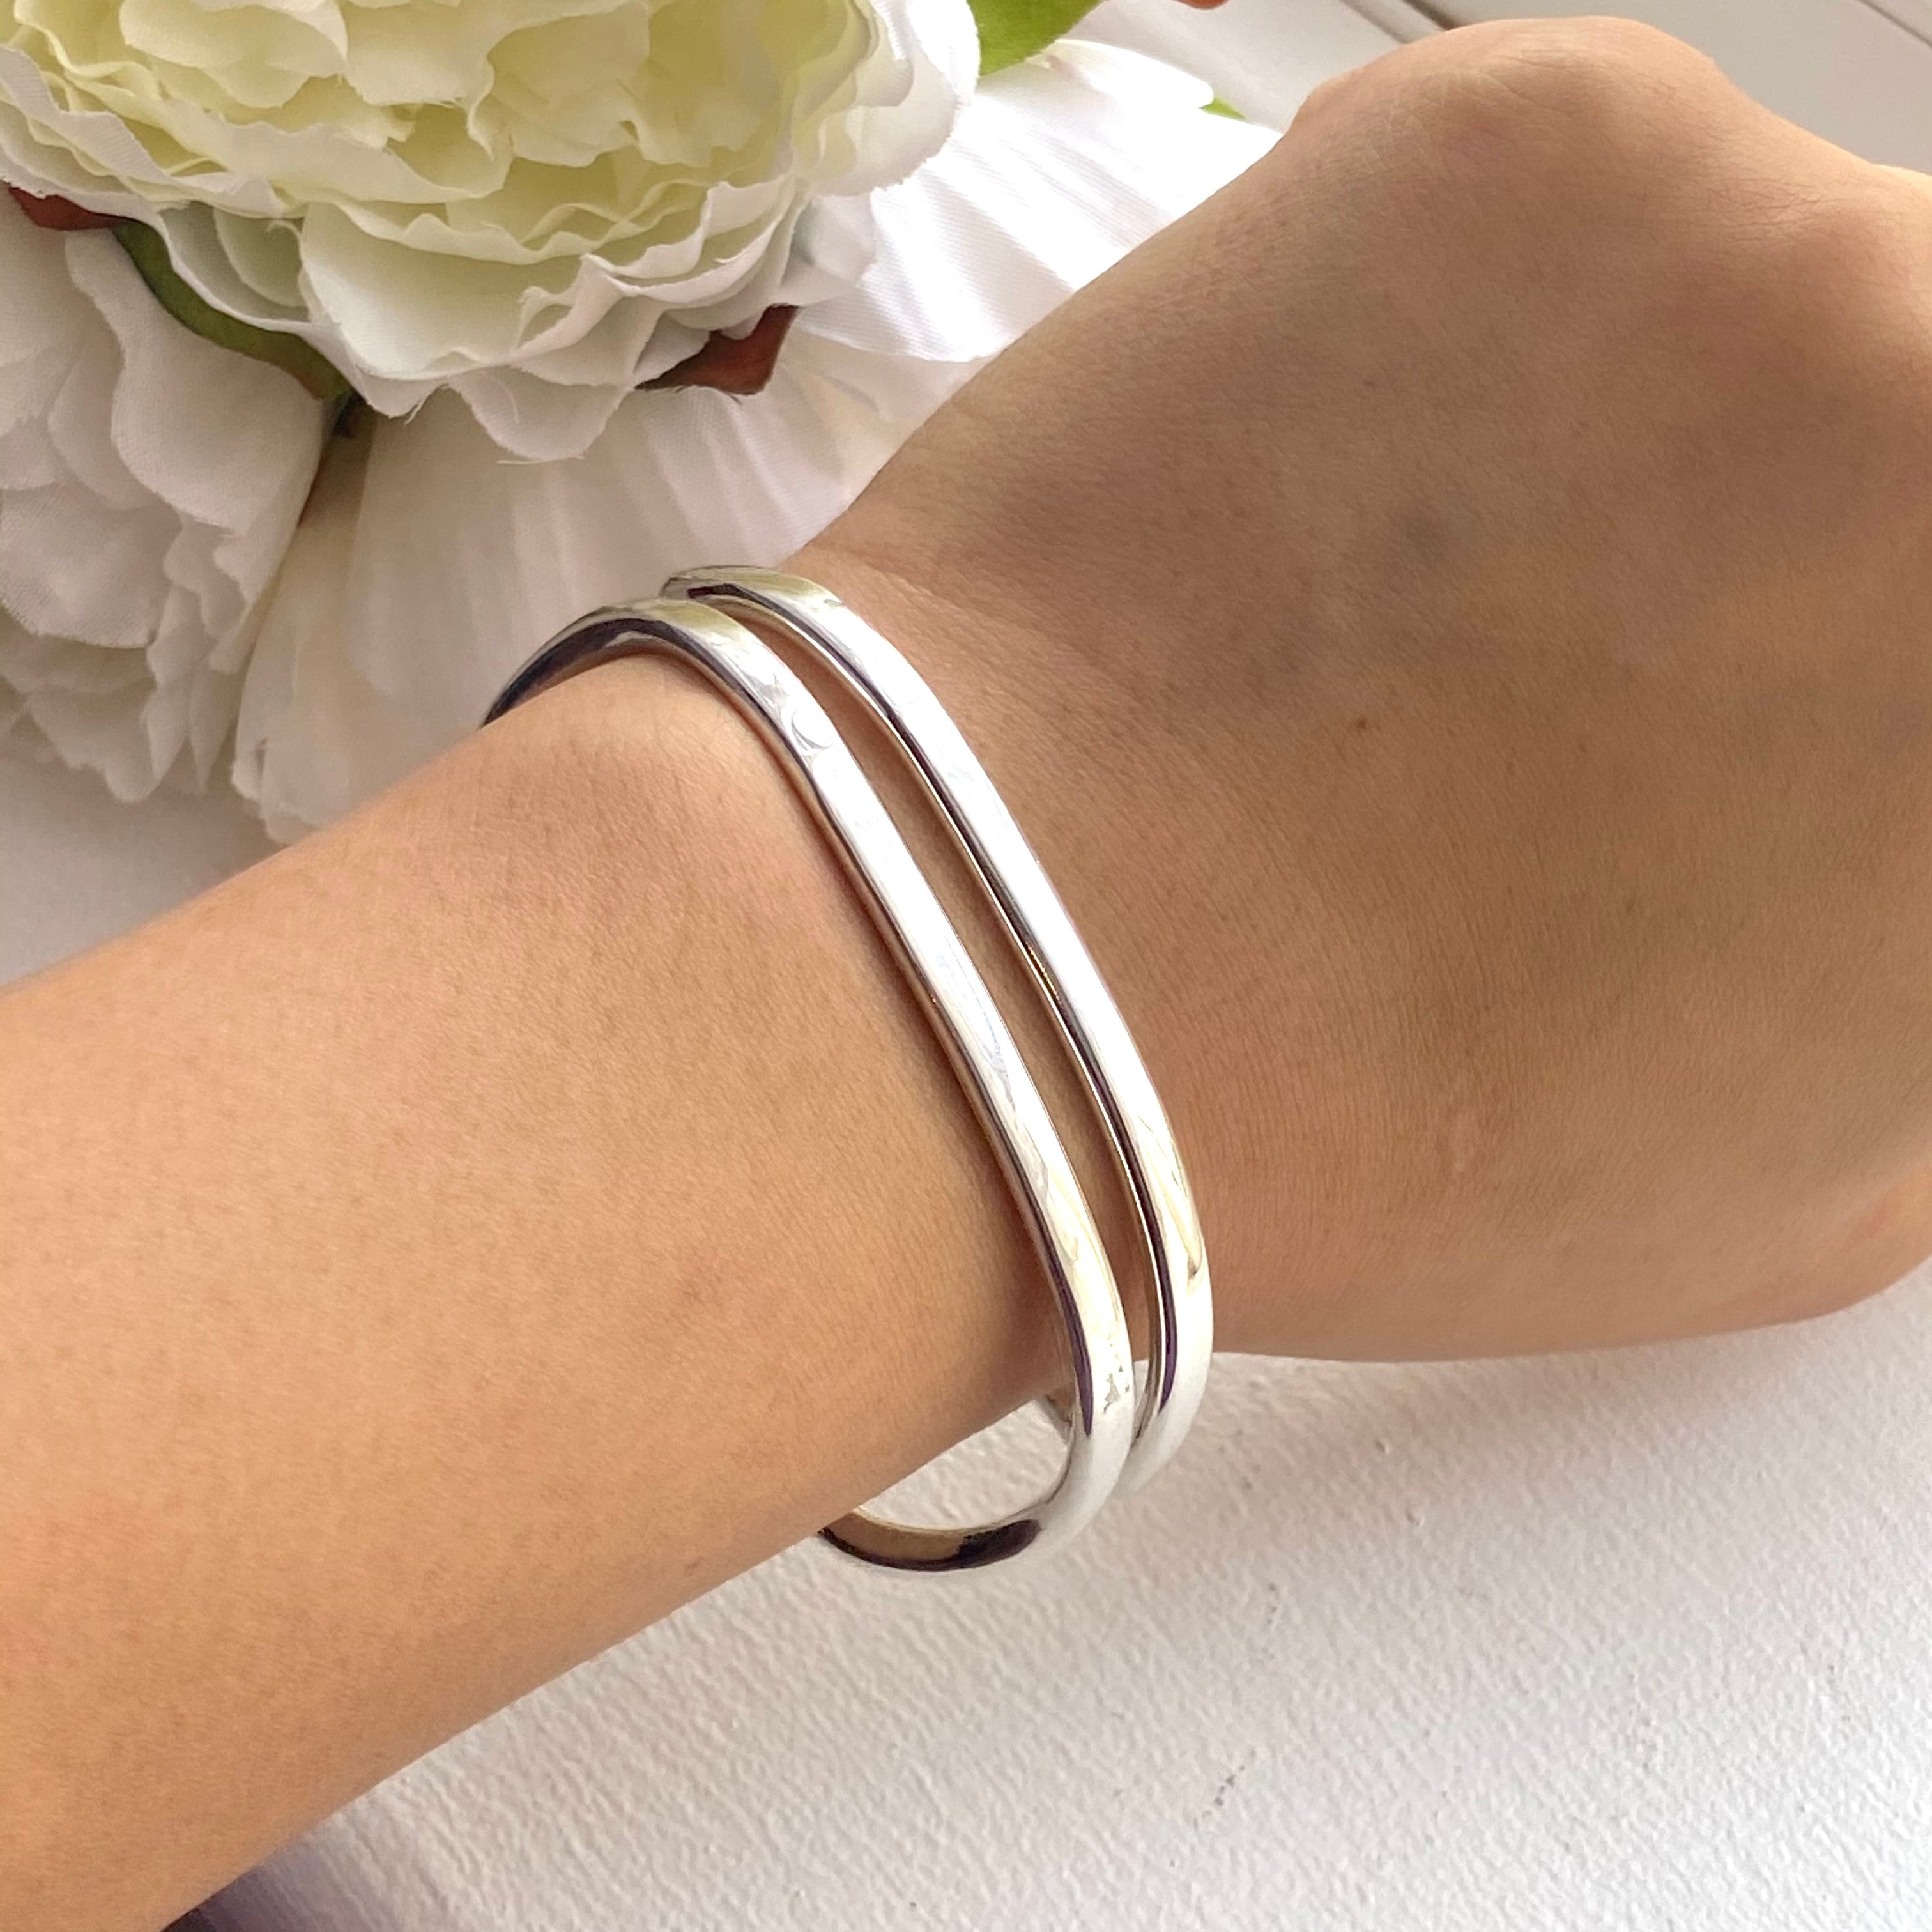 Sterling Silver Cuff with Two Flat Curving Silver Bands